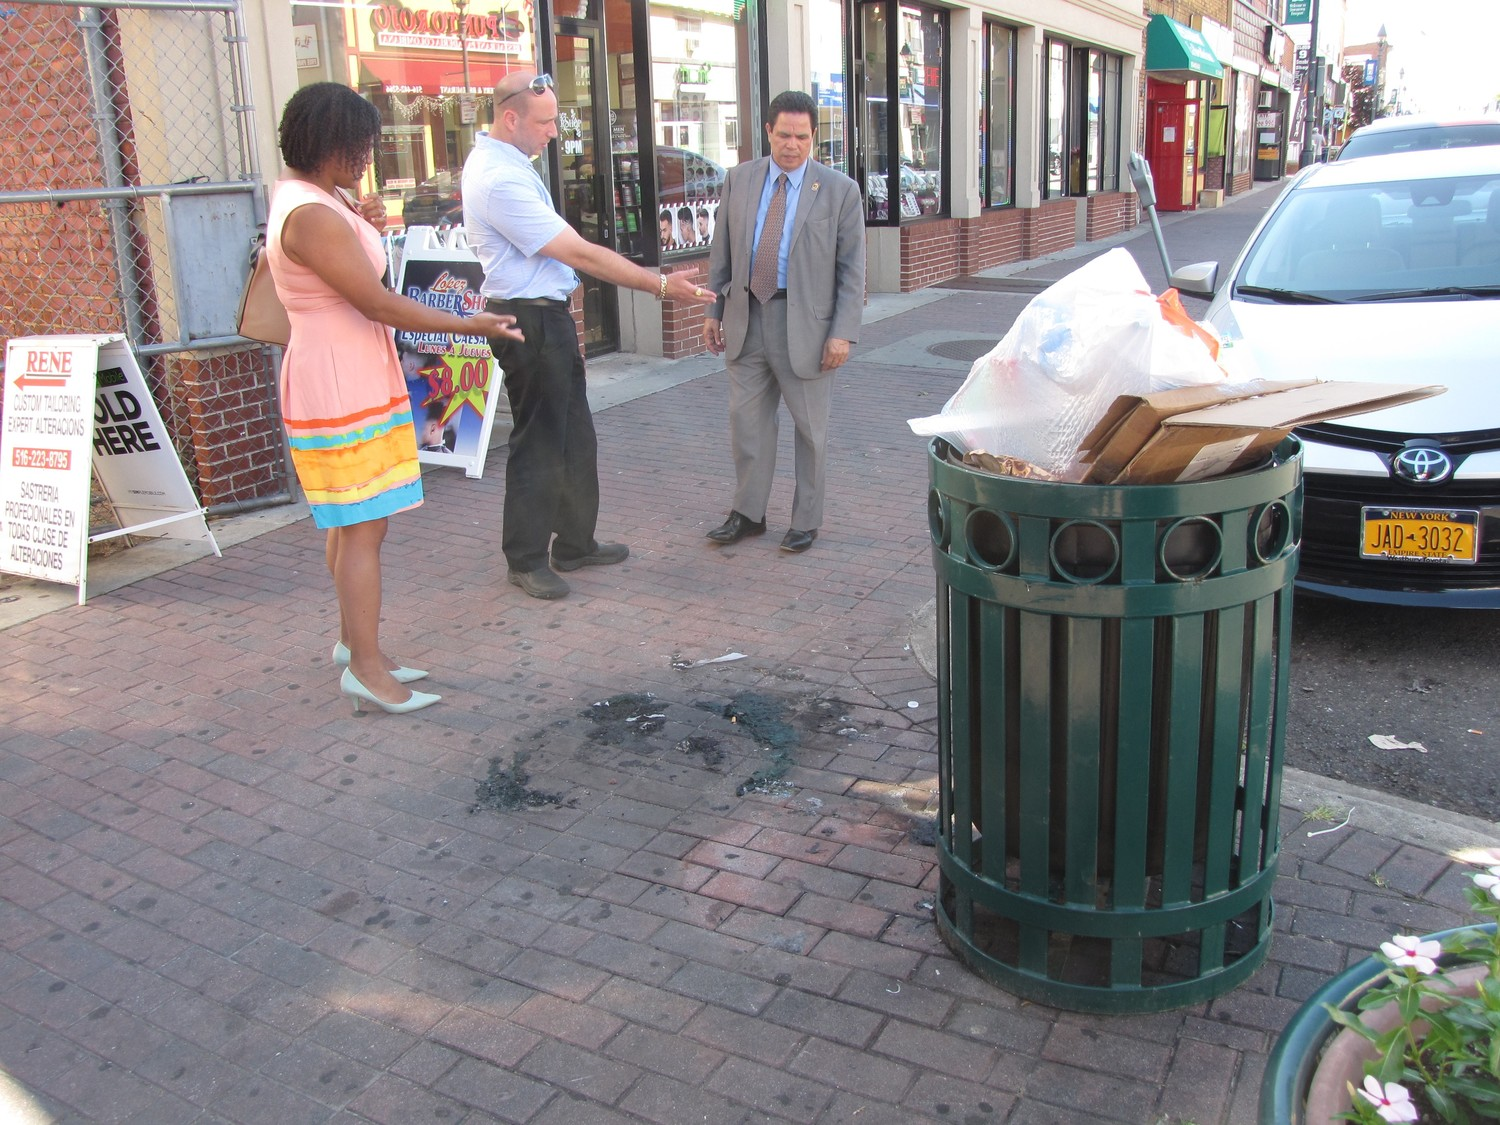 Jennifer Winters, vice president of the South Freeport Civic Association; Joseph Gambino, the group's president; and Cristobal Lopez, president of Latinos for Progress, checked out a trash receptacle in front of the Lopez Barbershop on South Main Street that overflowed with trash. The civic group and the Village of Freeport are teaming up to clean up South Main.